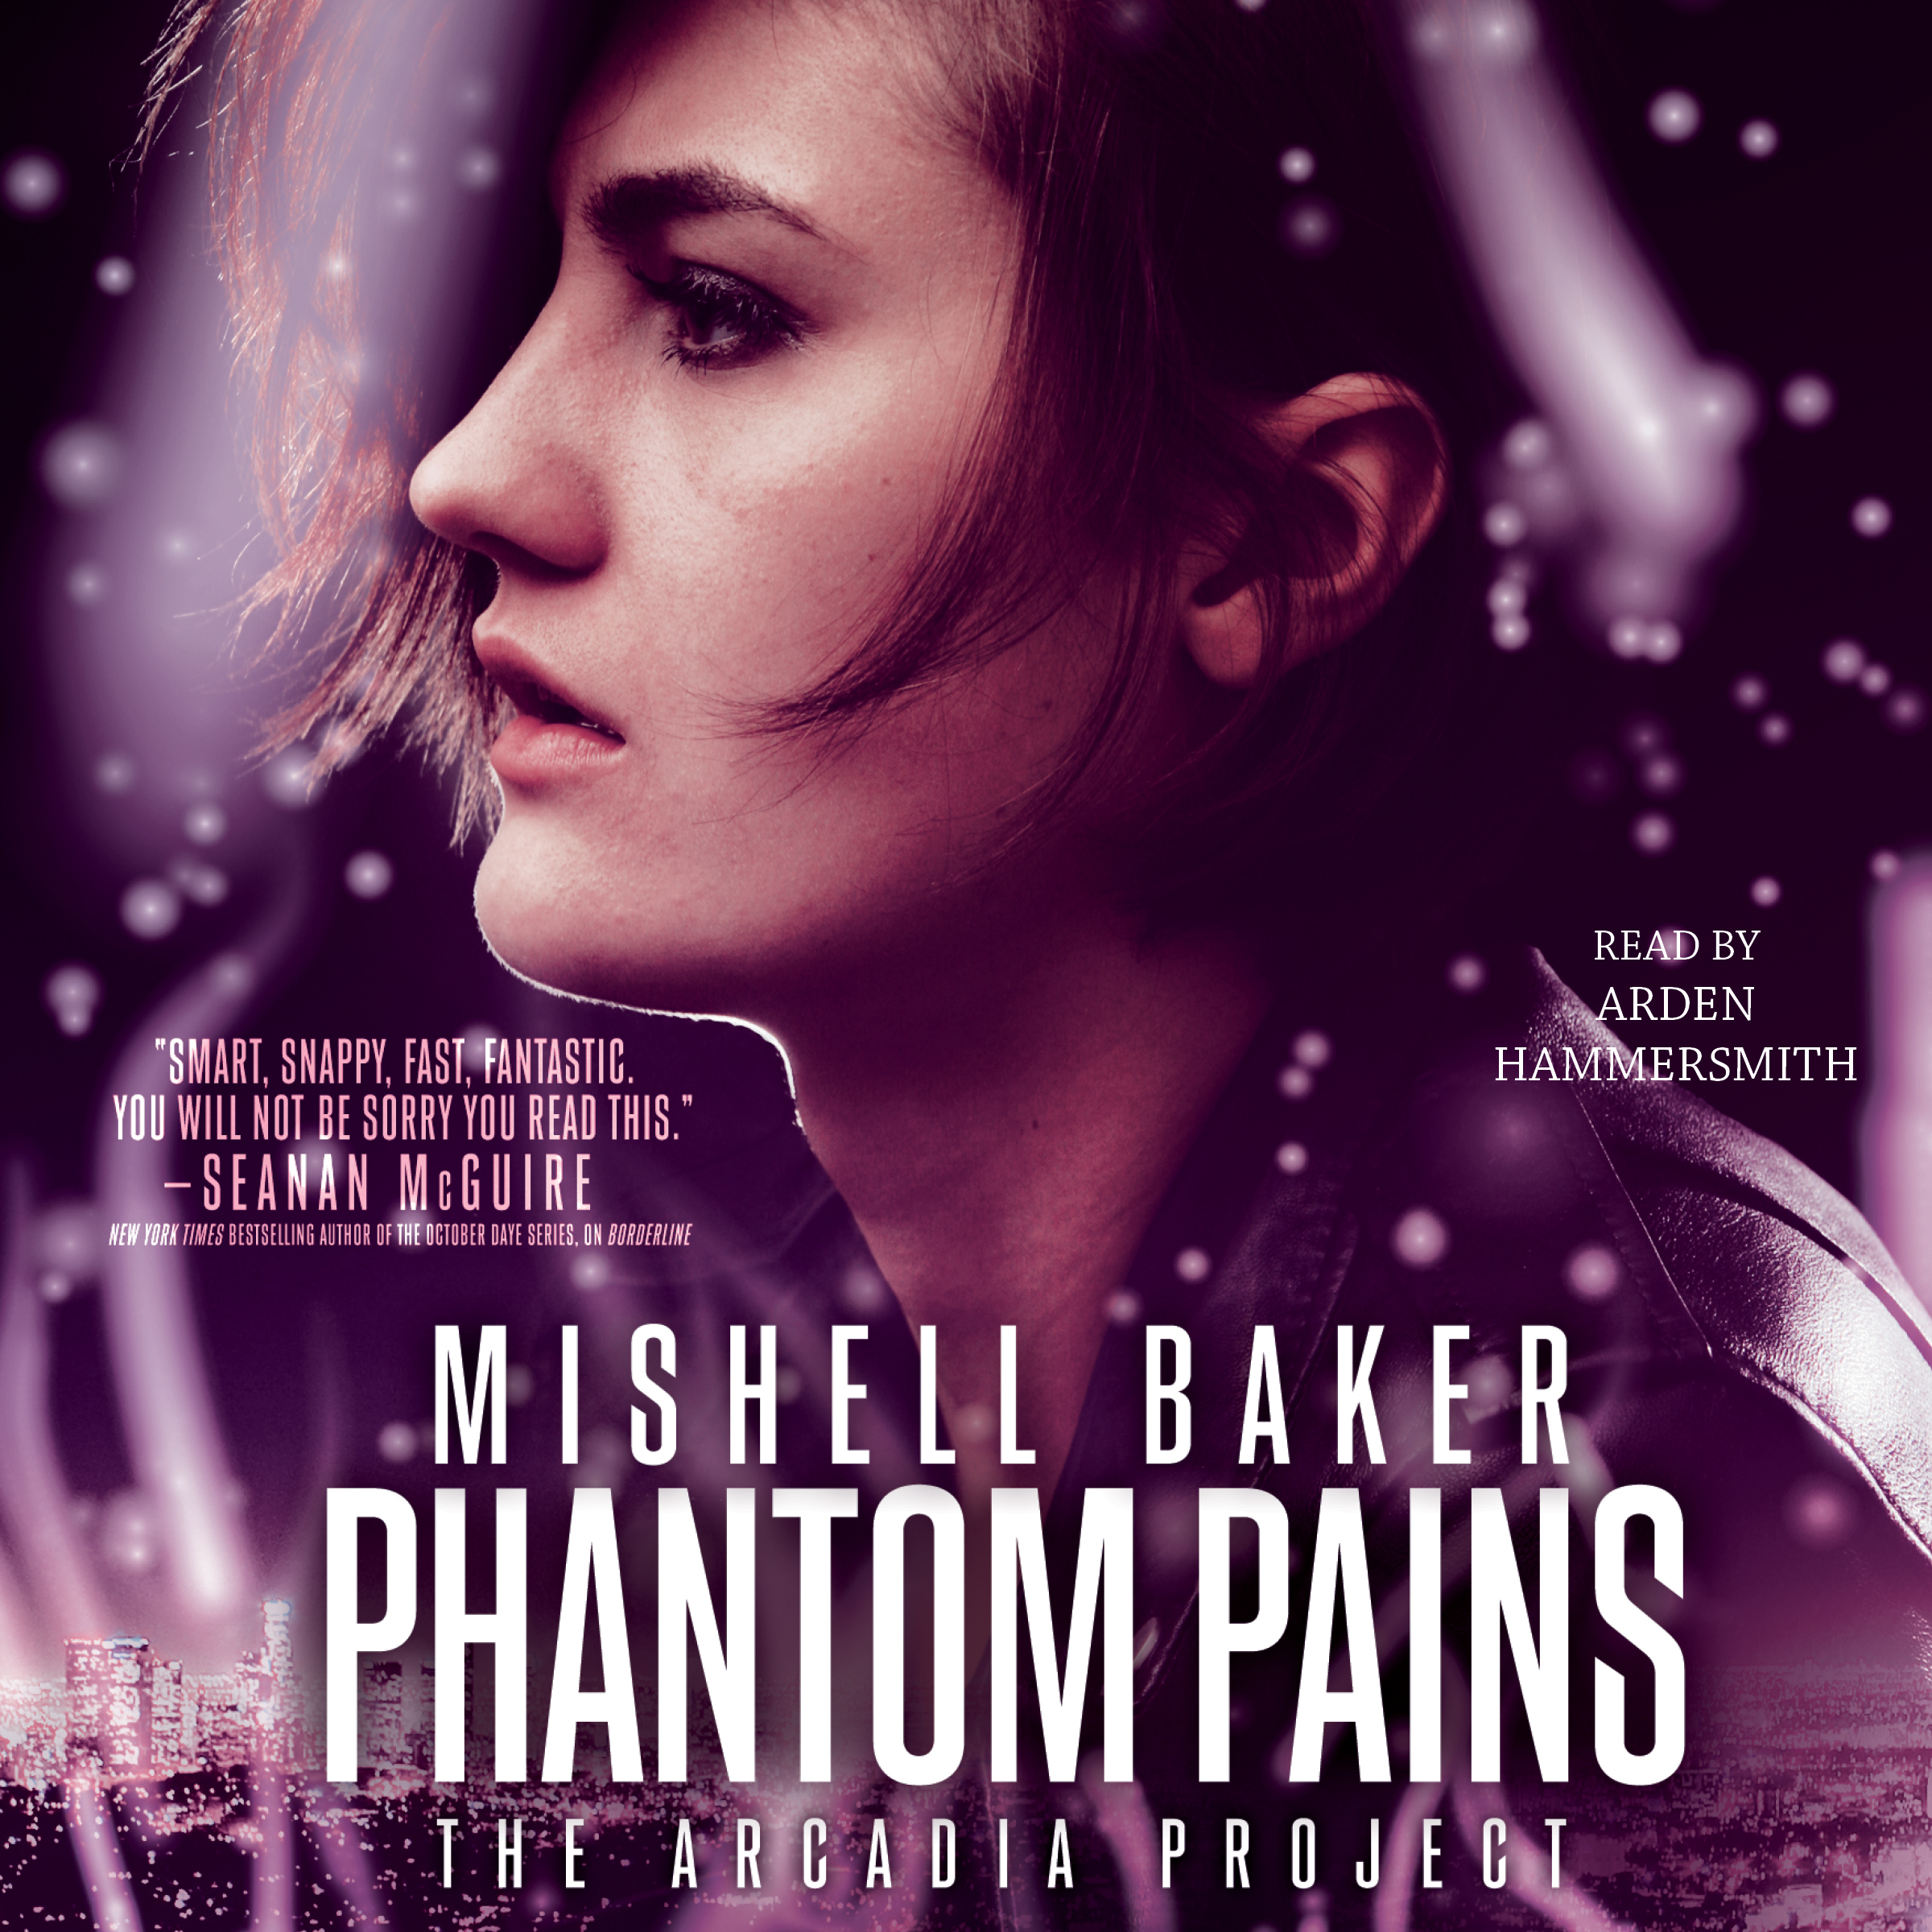 Phantom pains 9781508241614 hr